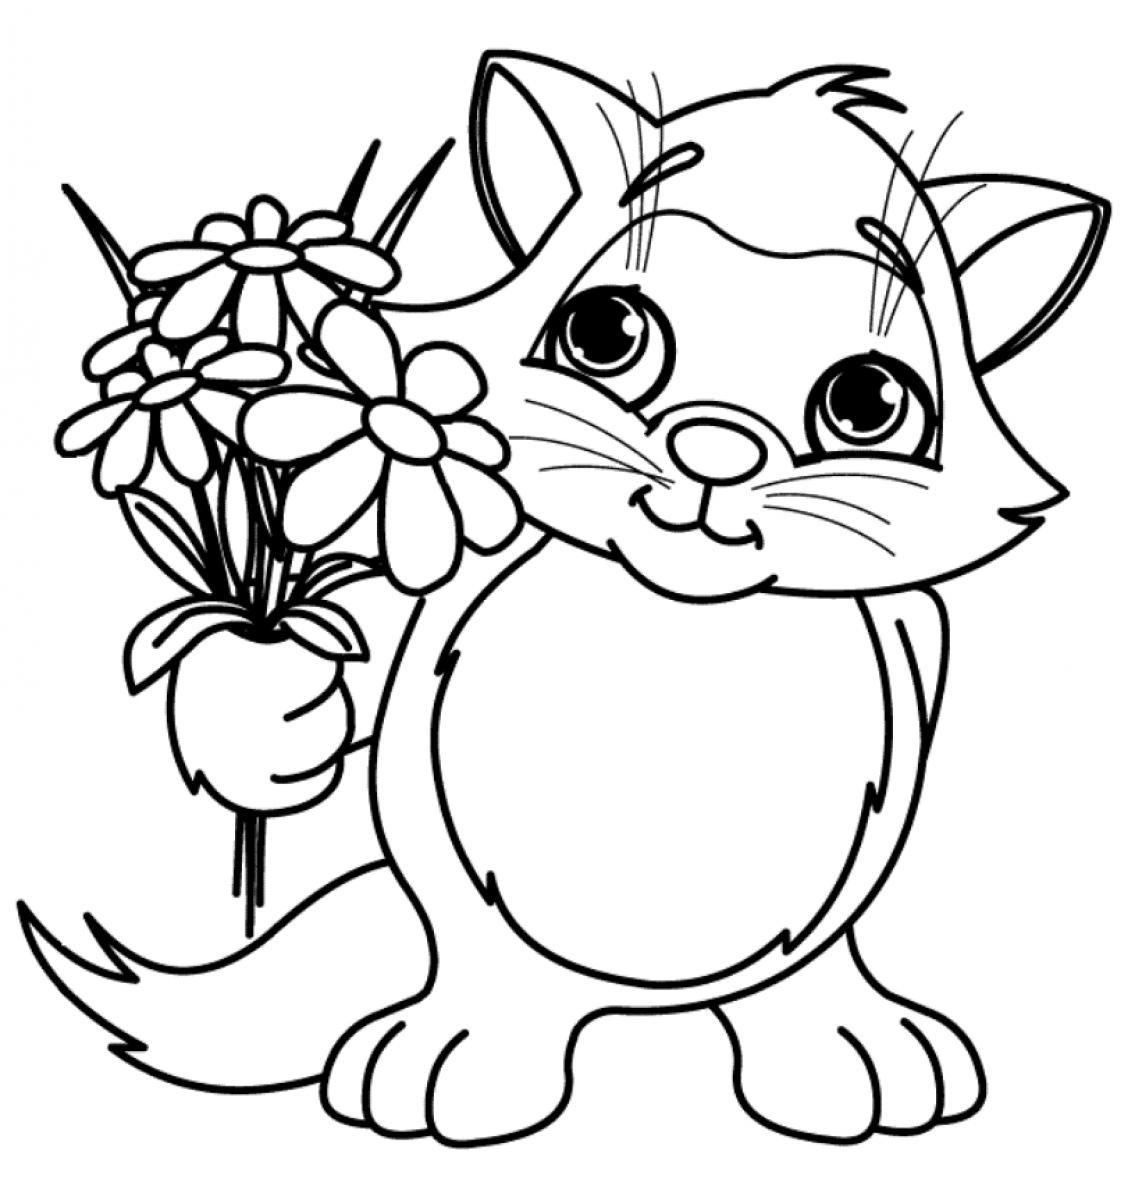 free printable flower coloring pages spring flower coloring pages to download and print for free printable flower free pages coloring